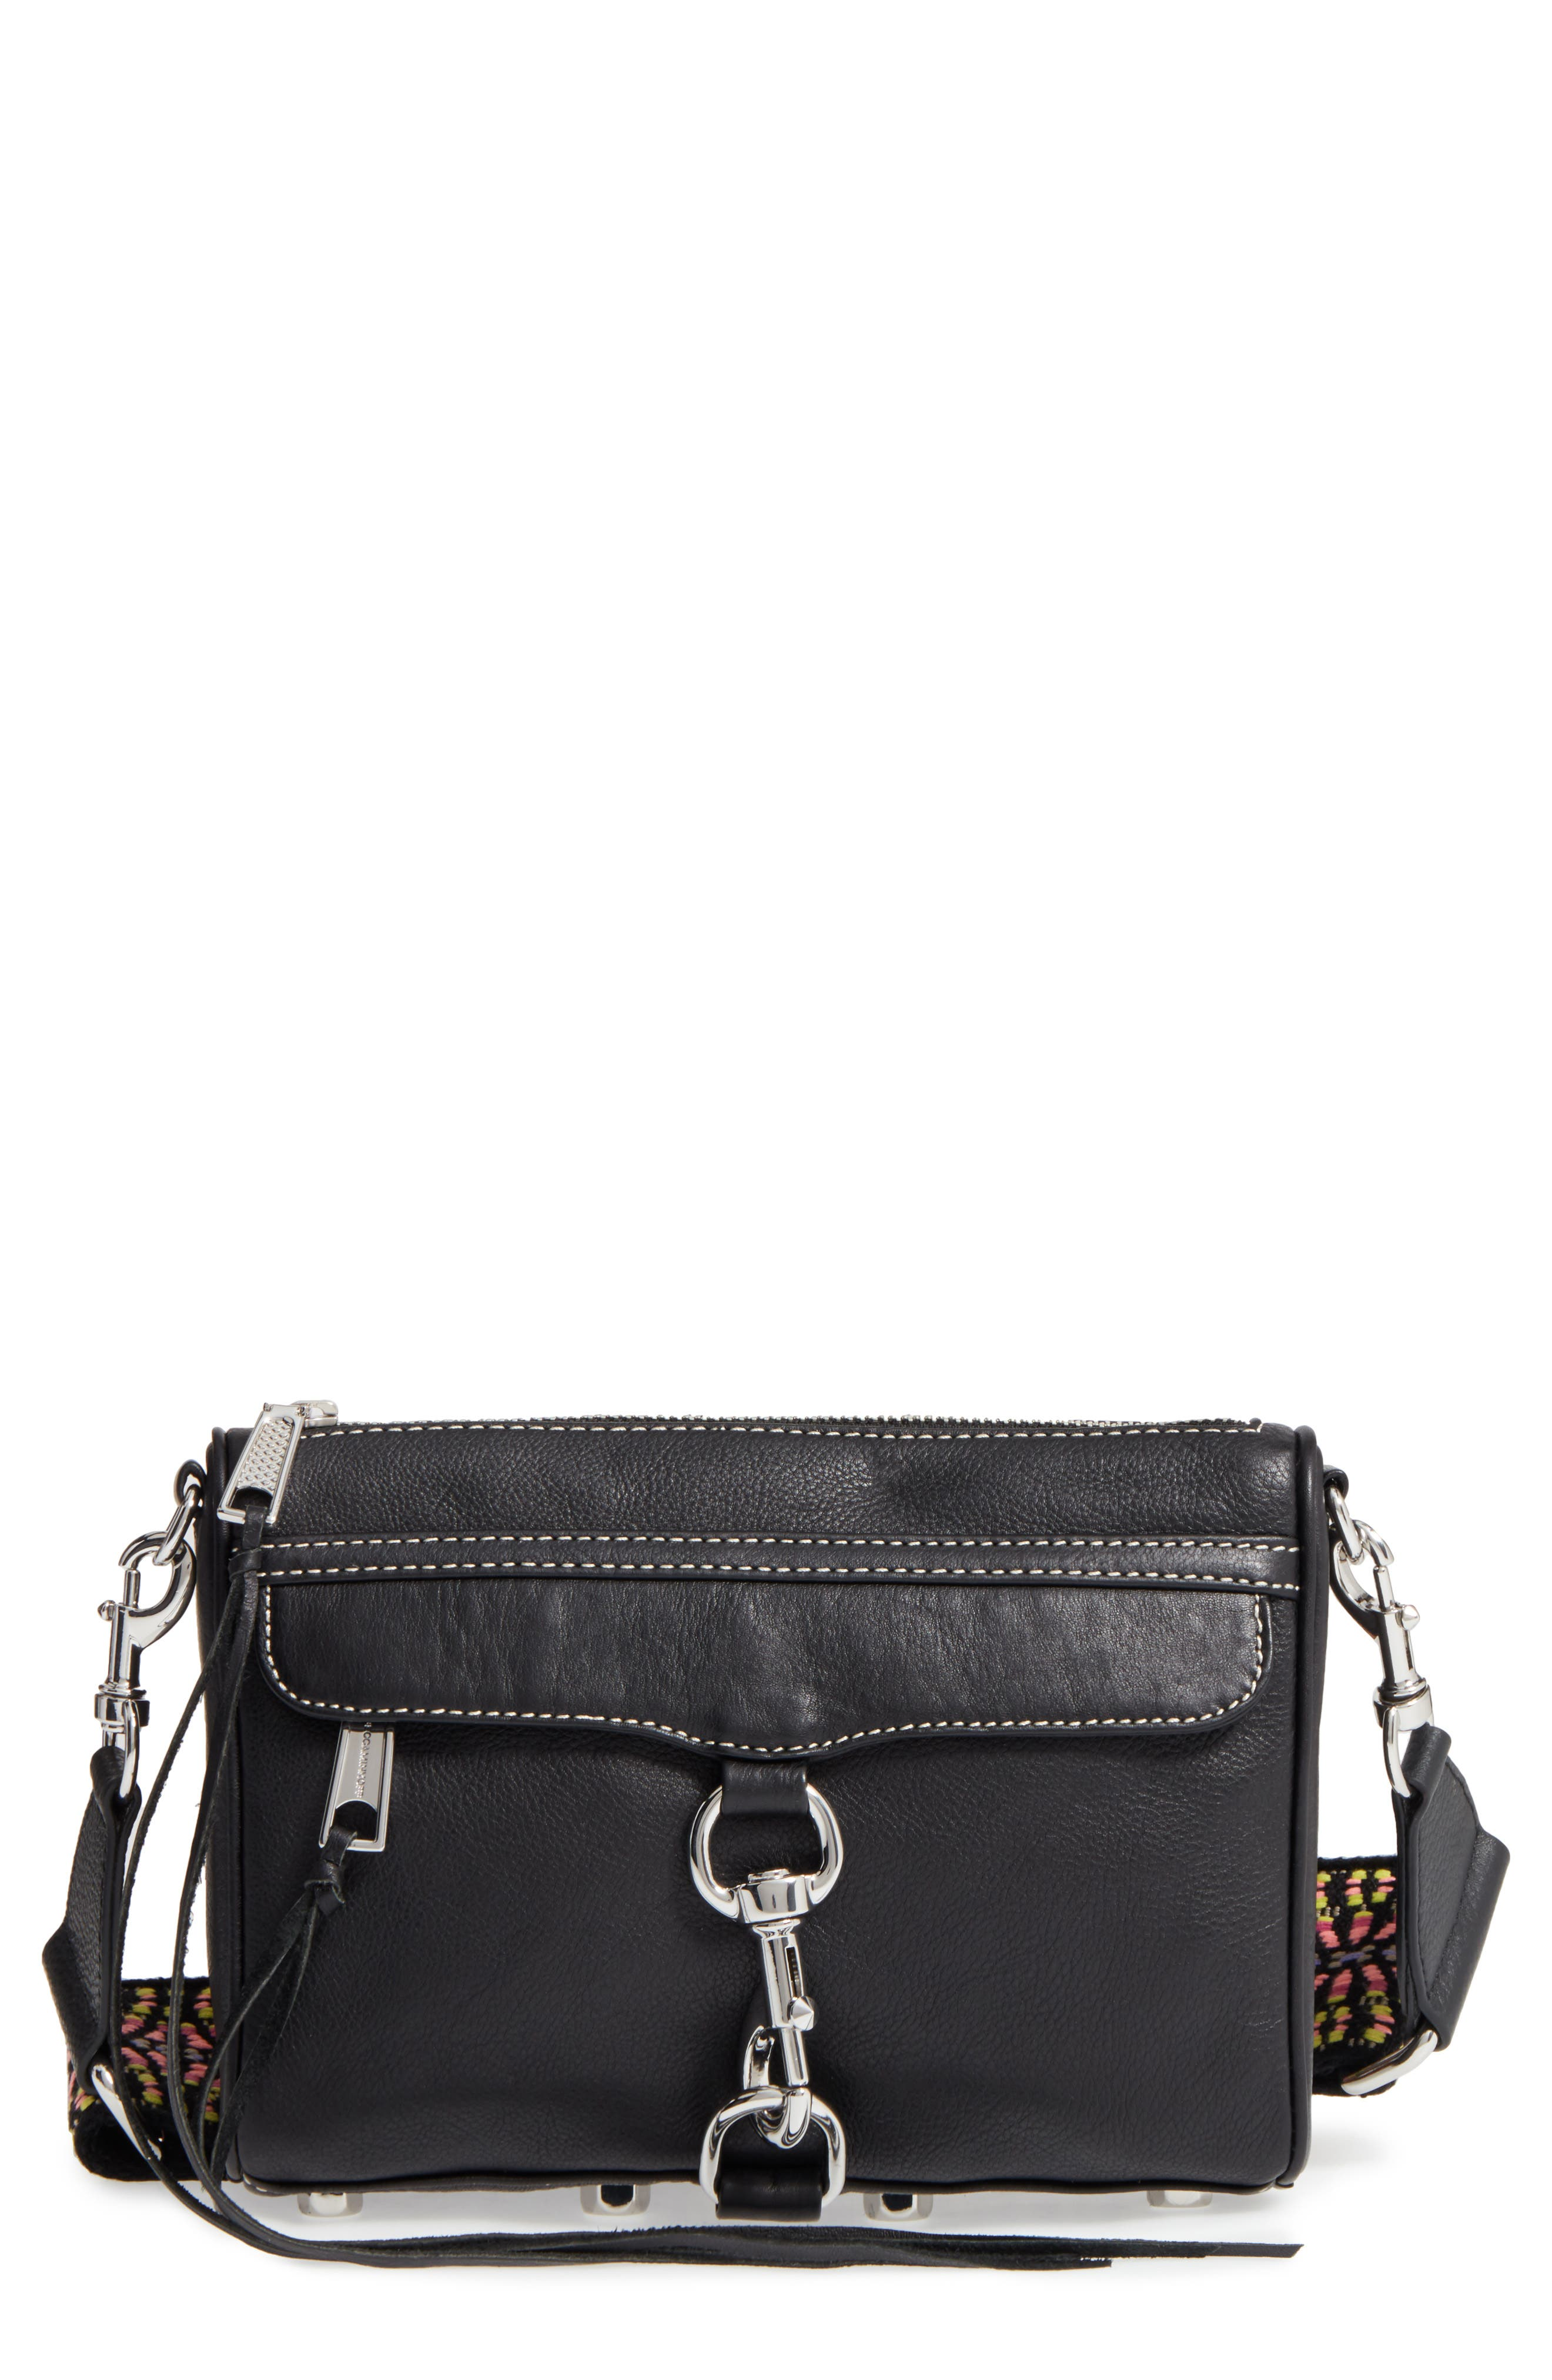 Alternate Image 1 Selected - Rebecca Minkoff Mini MAC Leather Crossbody Bag with Guitar Strap (Nordstrom Exclusive)